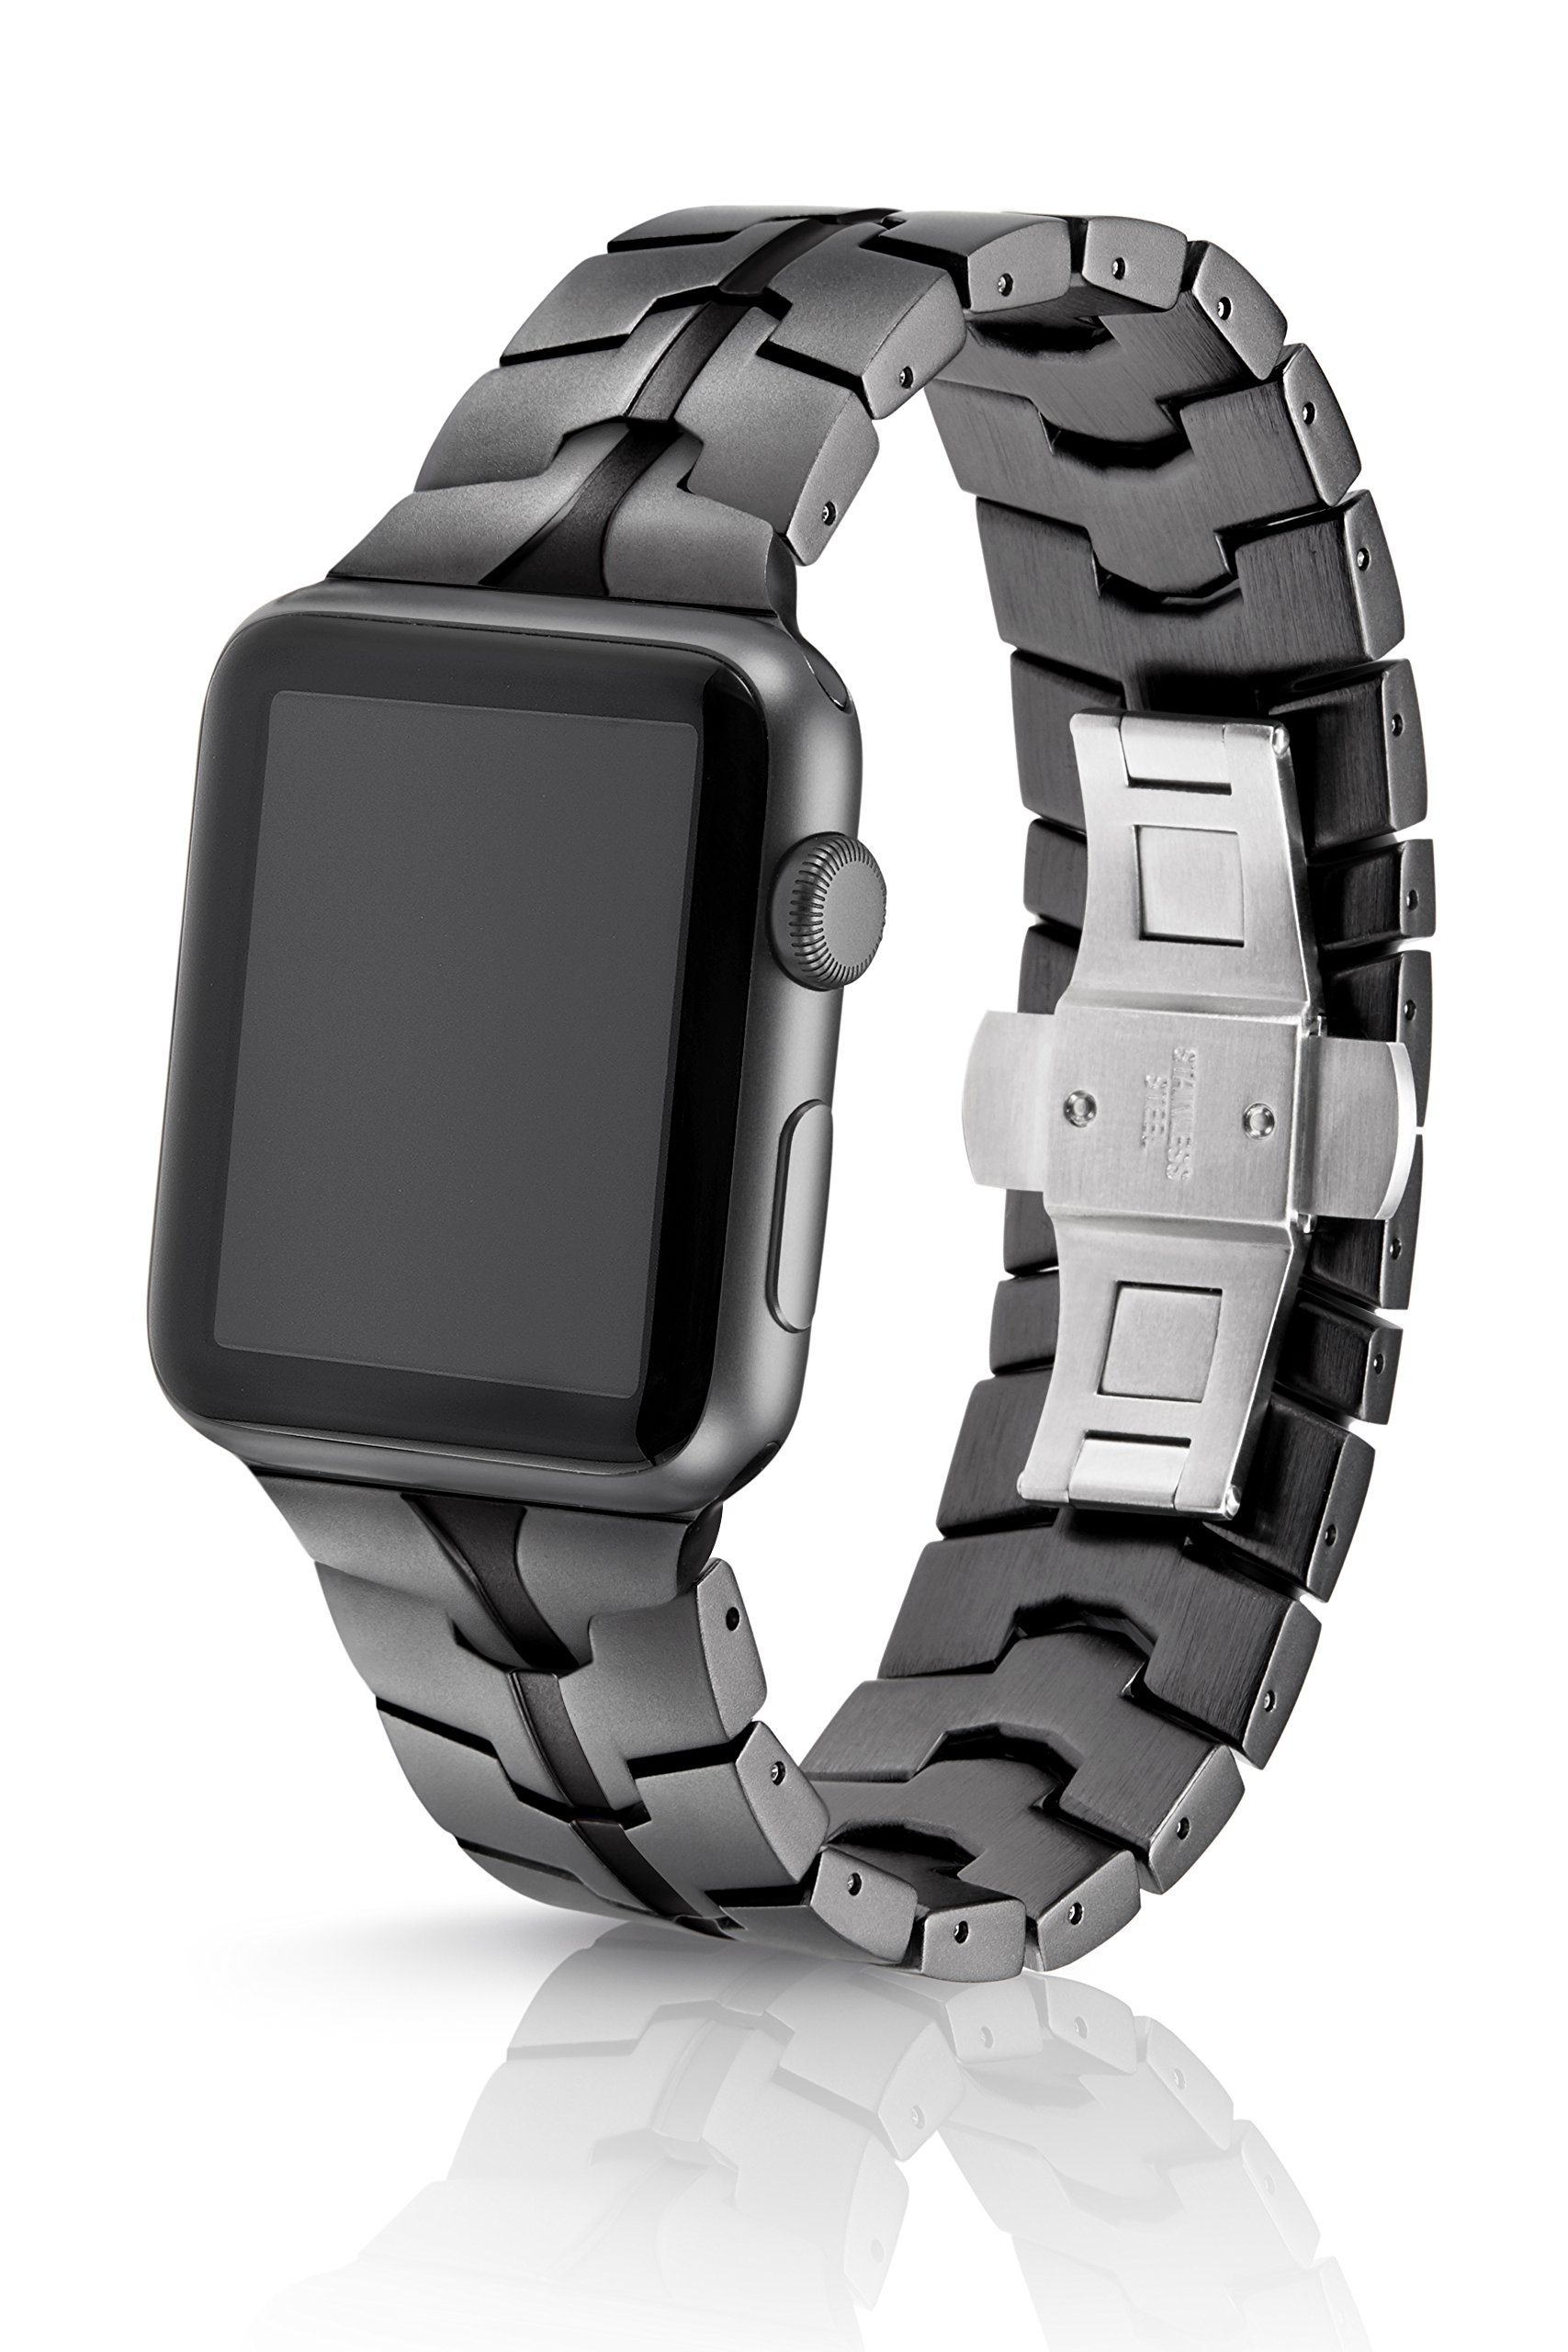 42/44mm JUUK Granite Vitero Premium Watch Band Made for The Apple Watch, Using Aircraft Grade, Hard Anodized 6000 Series Aluminum with a Solid Stainless Steel Butterfly deployant Buckle (Matte)